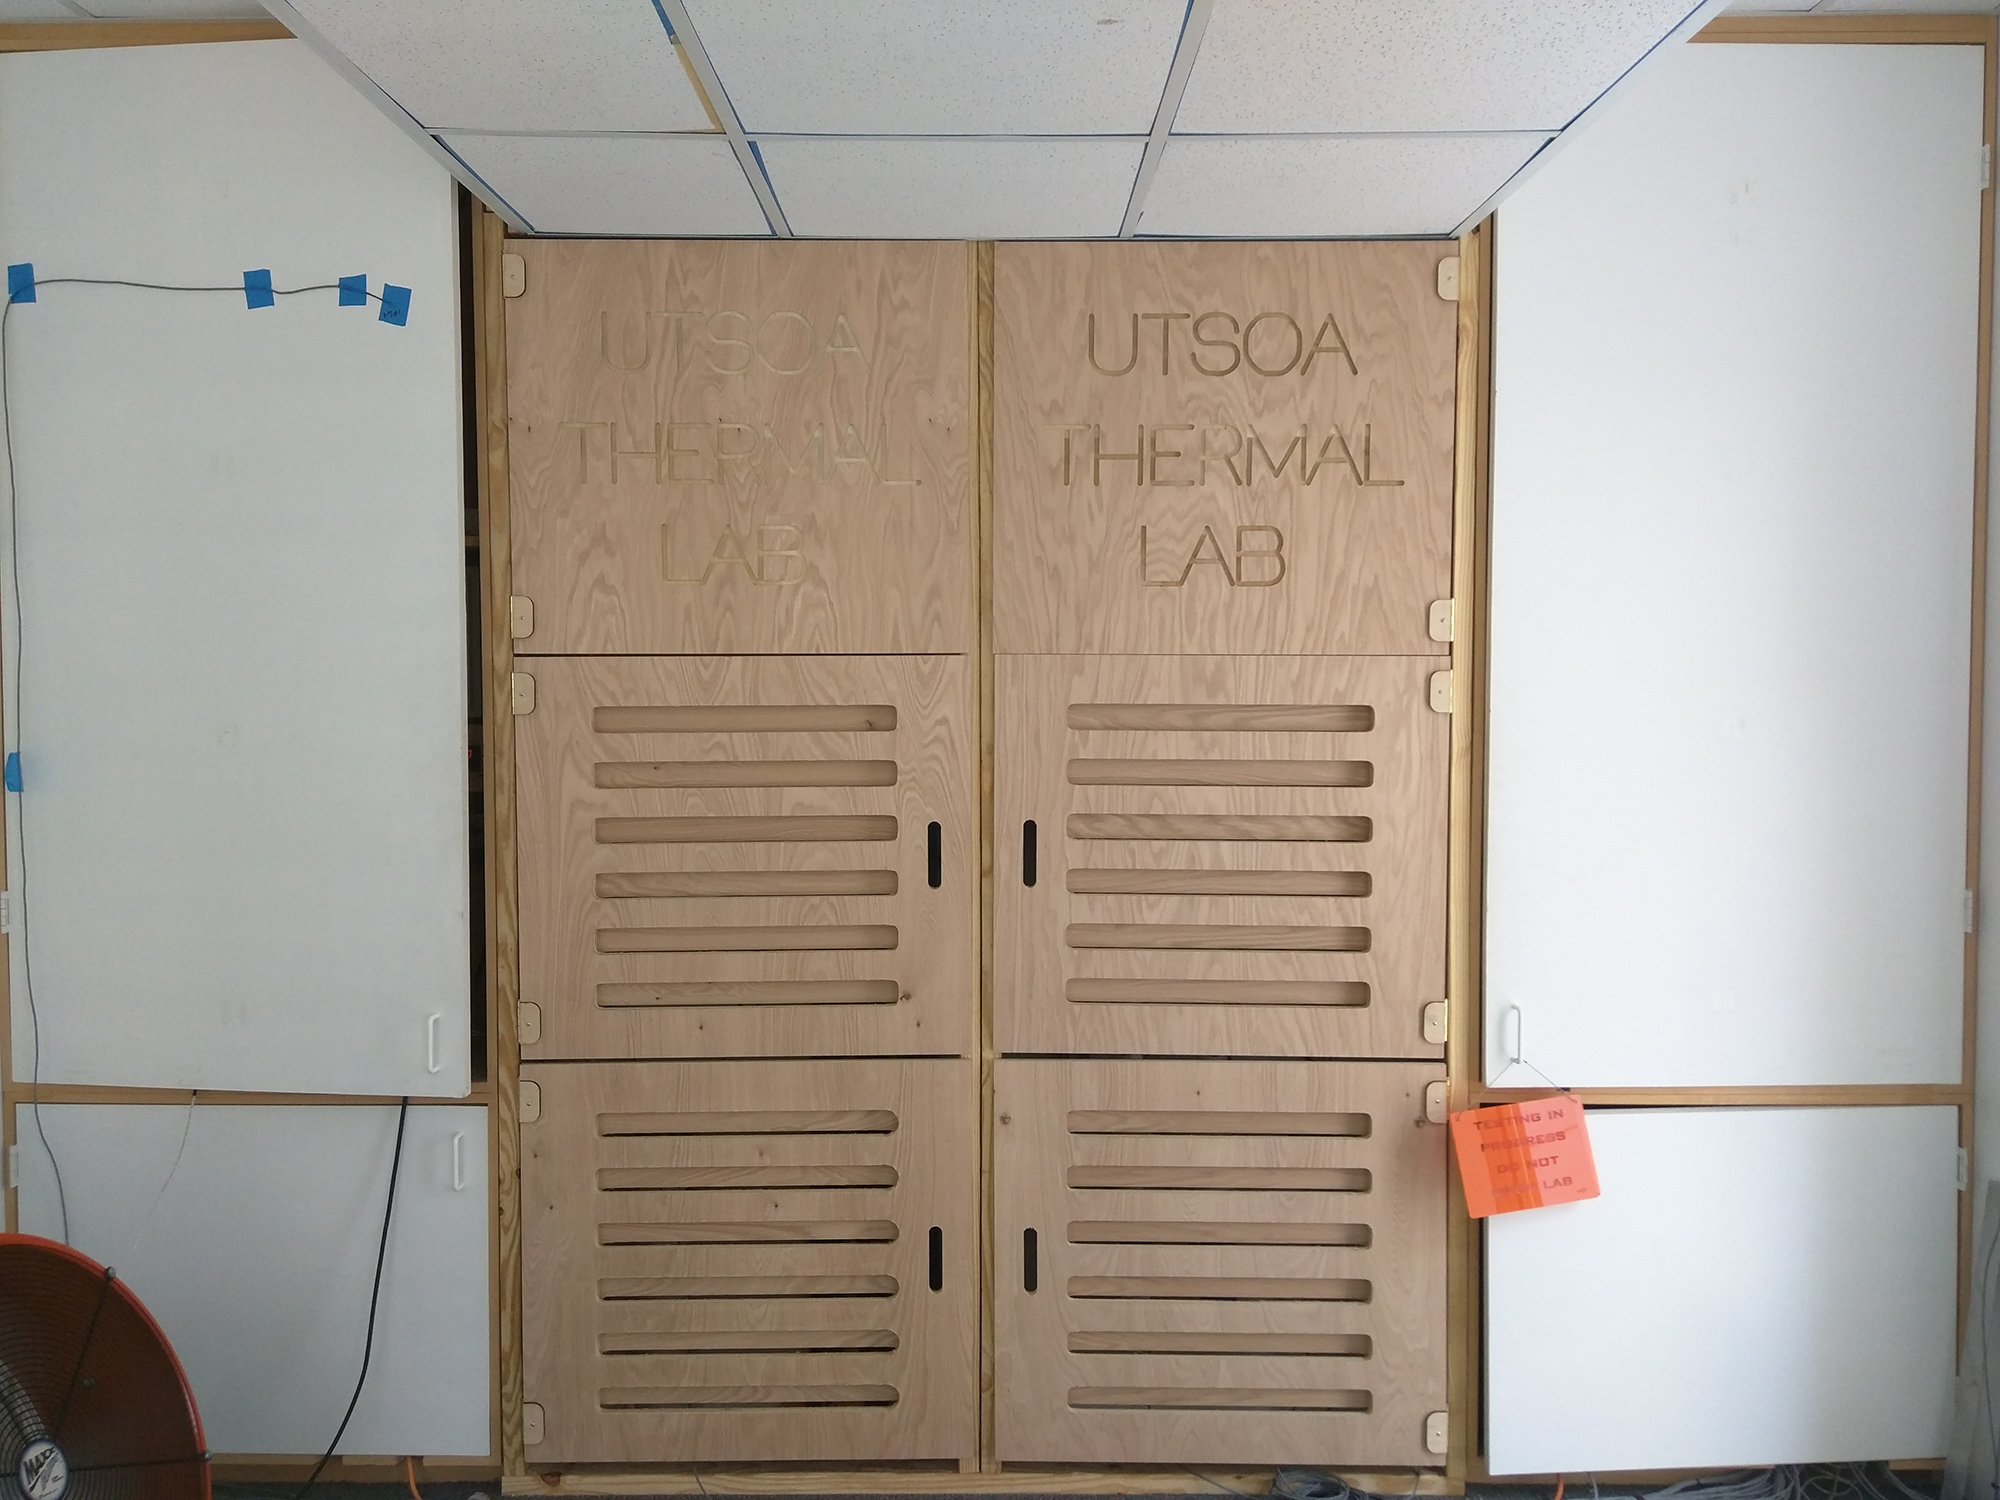 Thermal Lab Cabinets